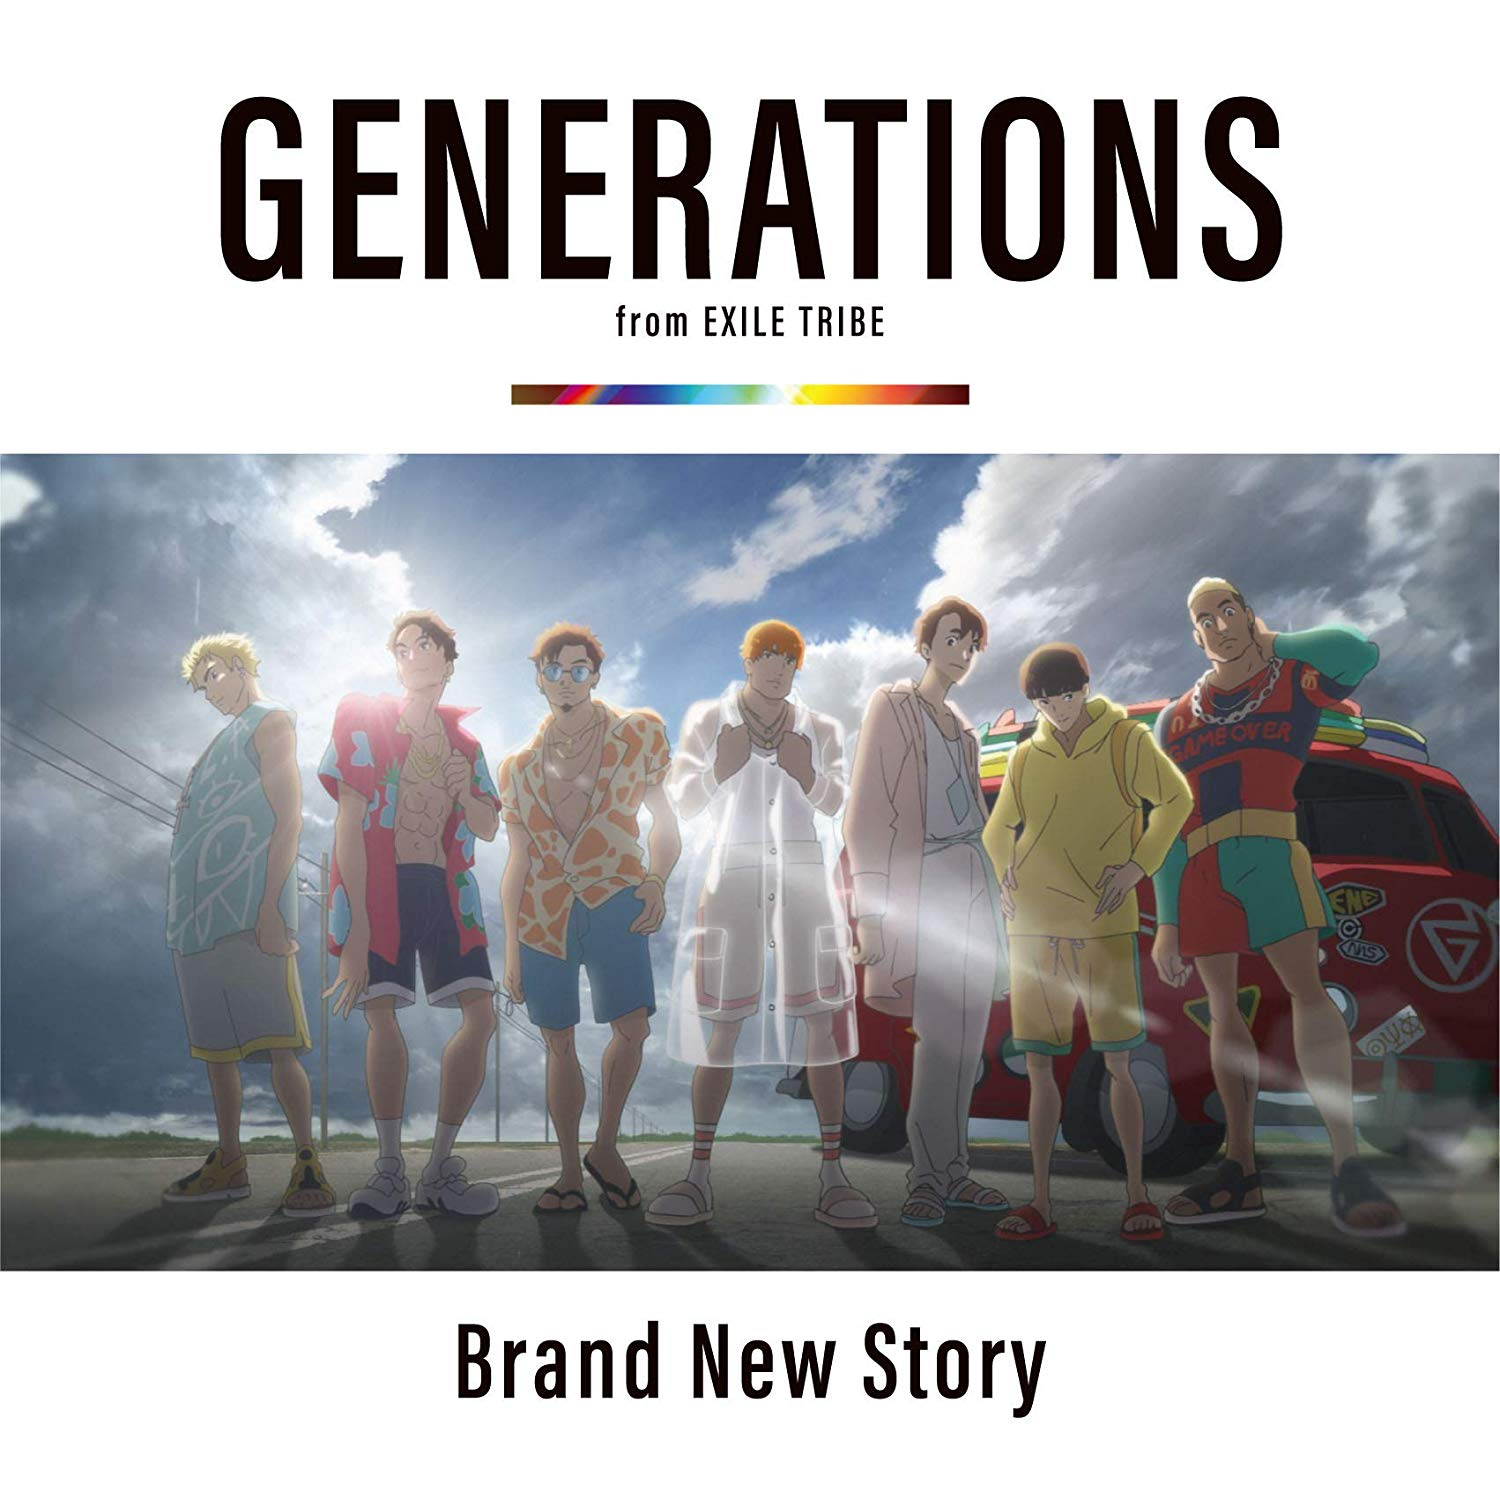 GENERATIONS From EXILE TRIBE - Brand New Story